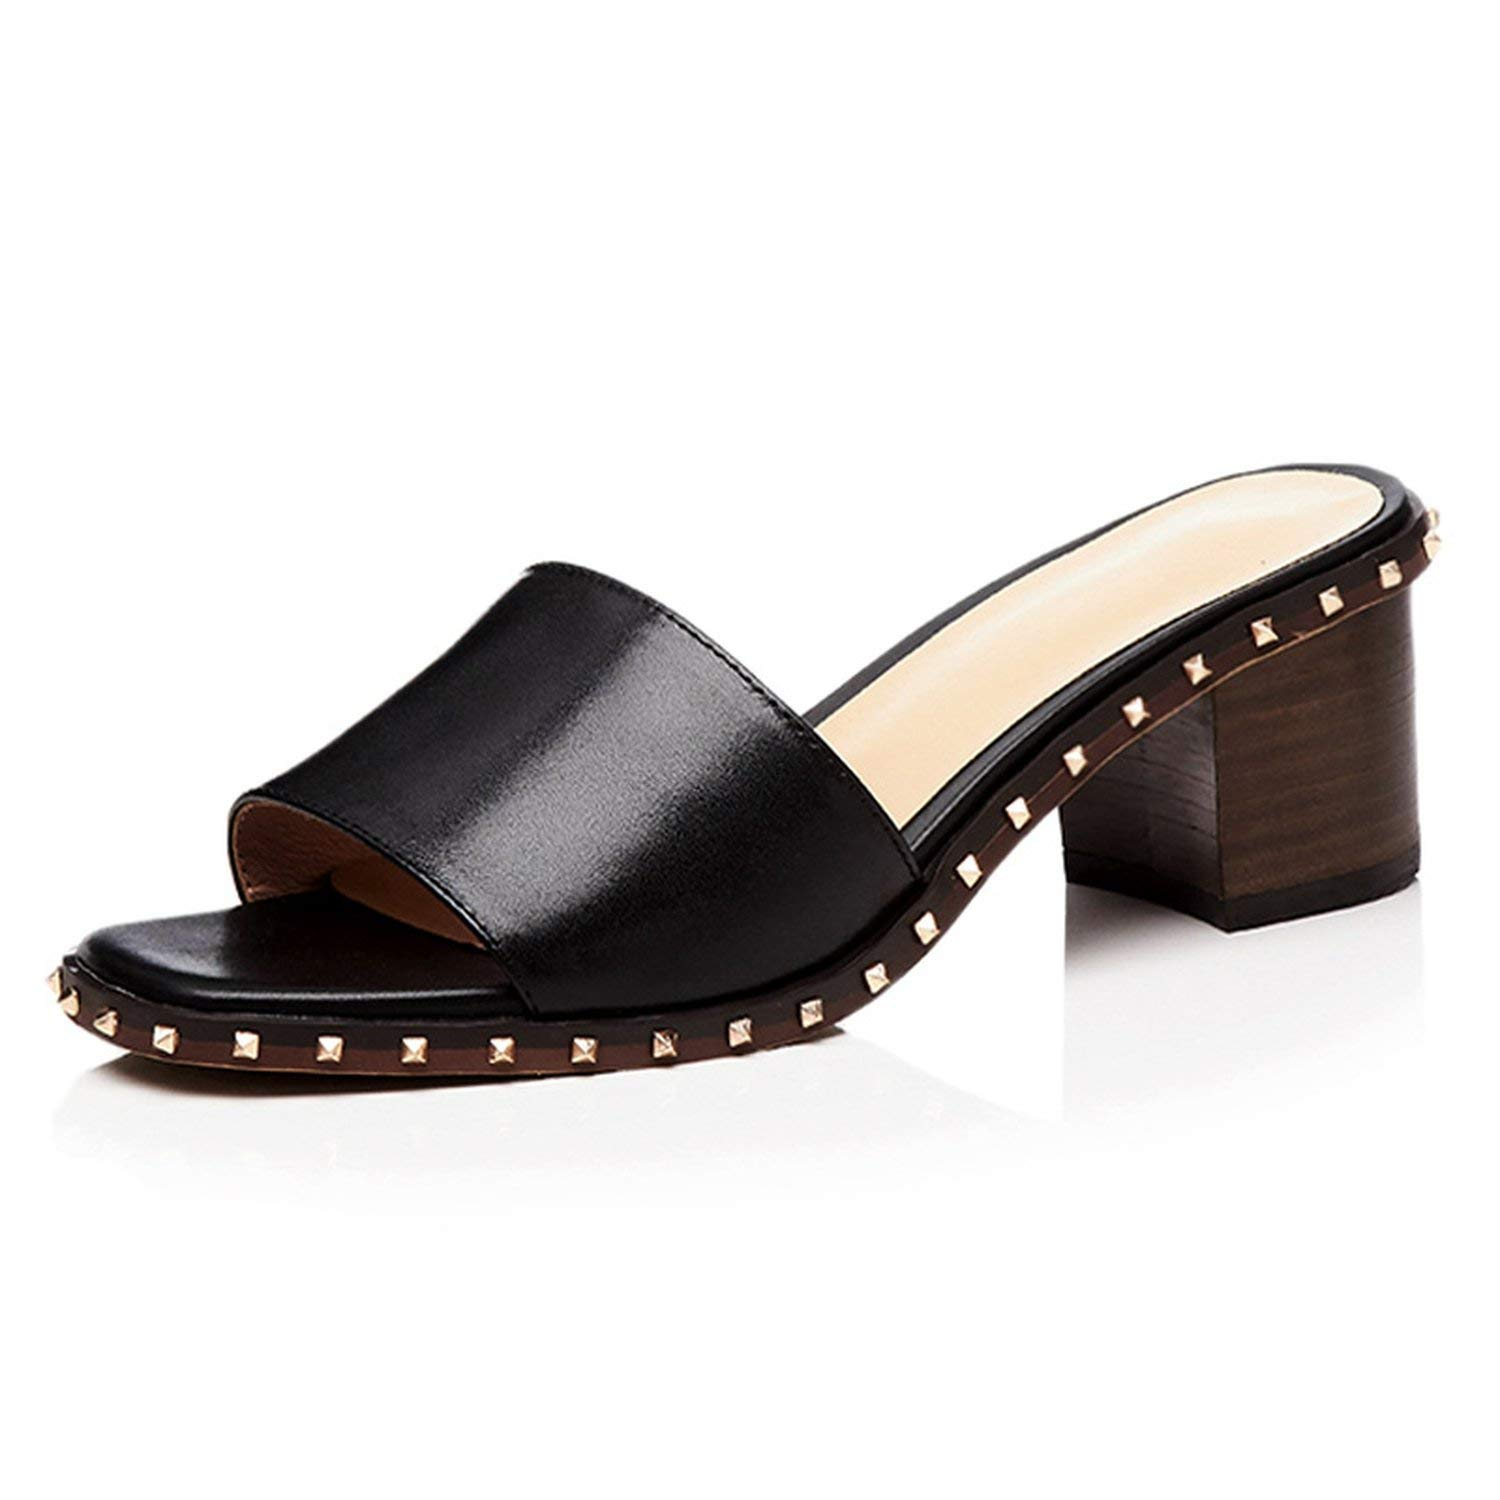 Black I Need-You Wood High Heels Women Slippers Open Toe Rivet Footwear Leather Female Mules shoes Fashion Slides shoes Woman Summer 2019